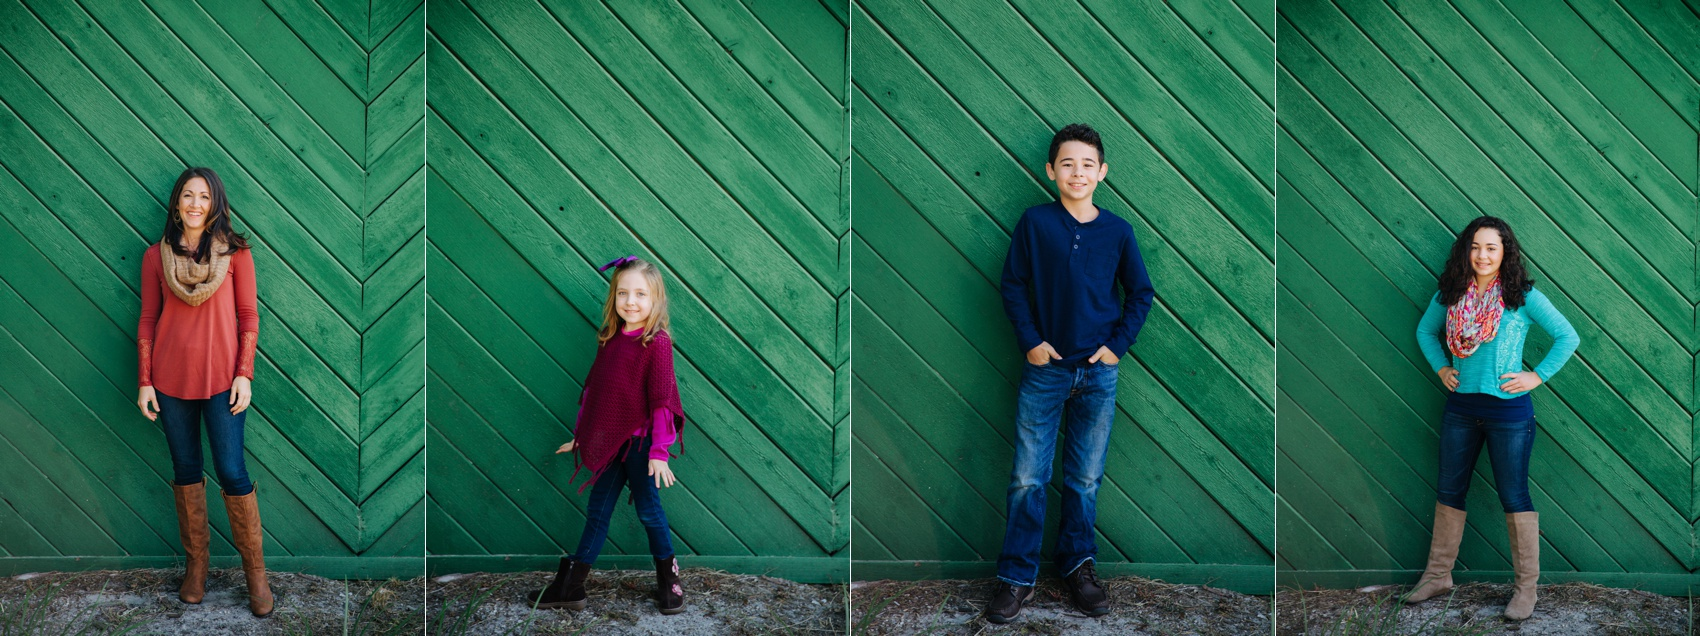 winter garden family portraits-6